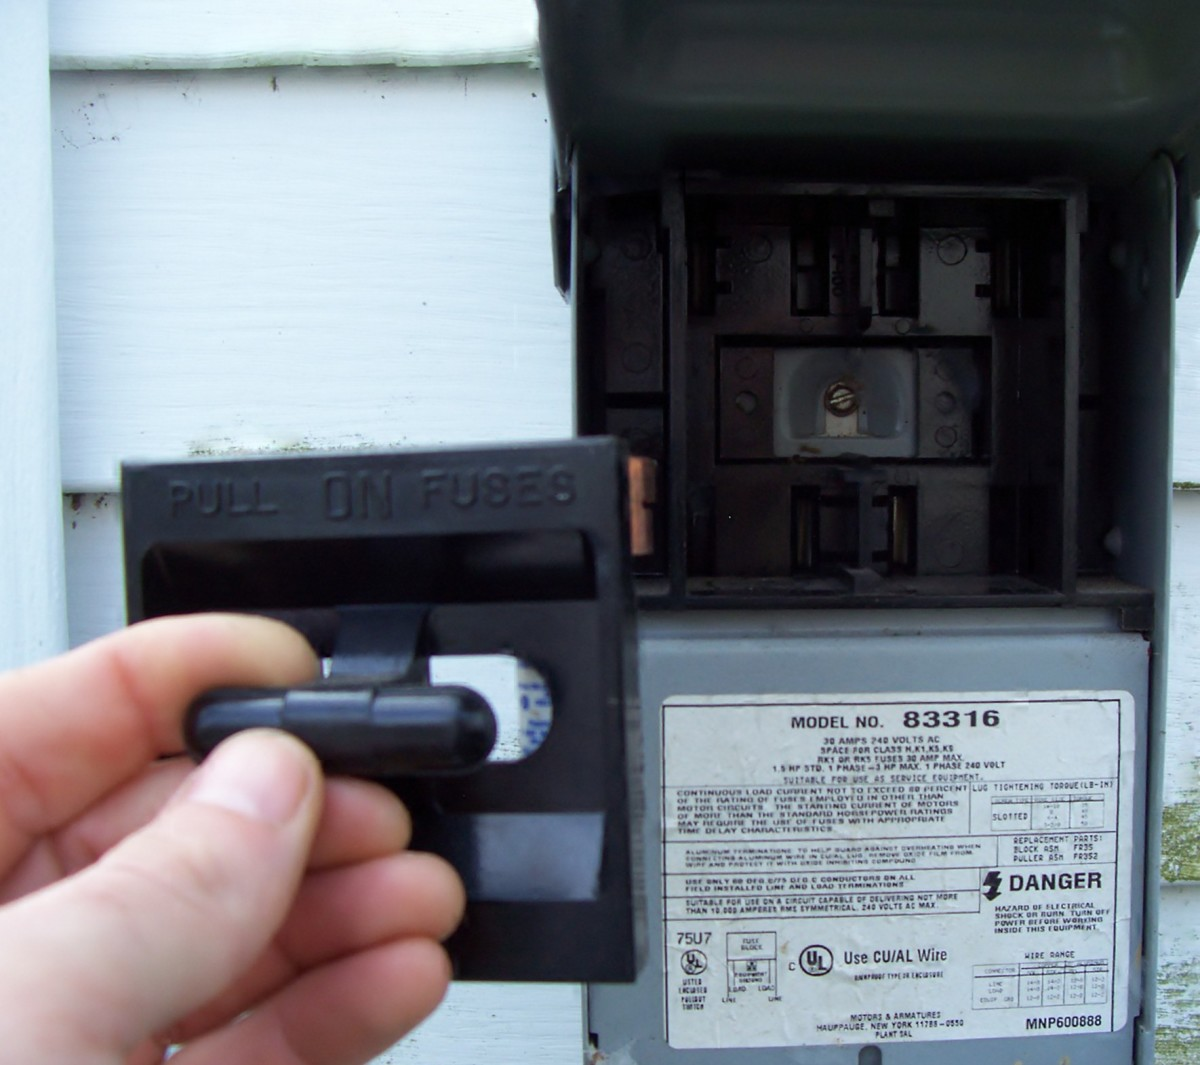 Pulling the disconnect cuts power to the condenser.